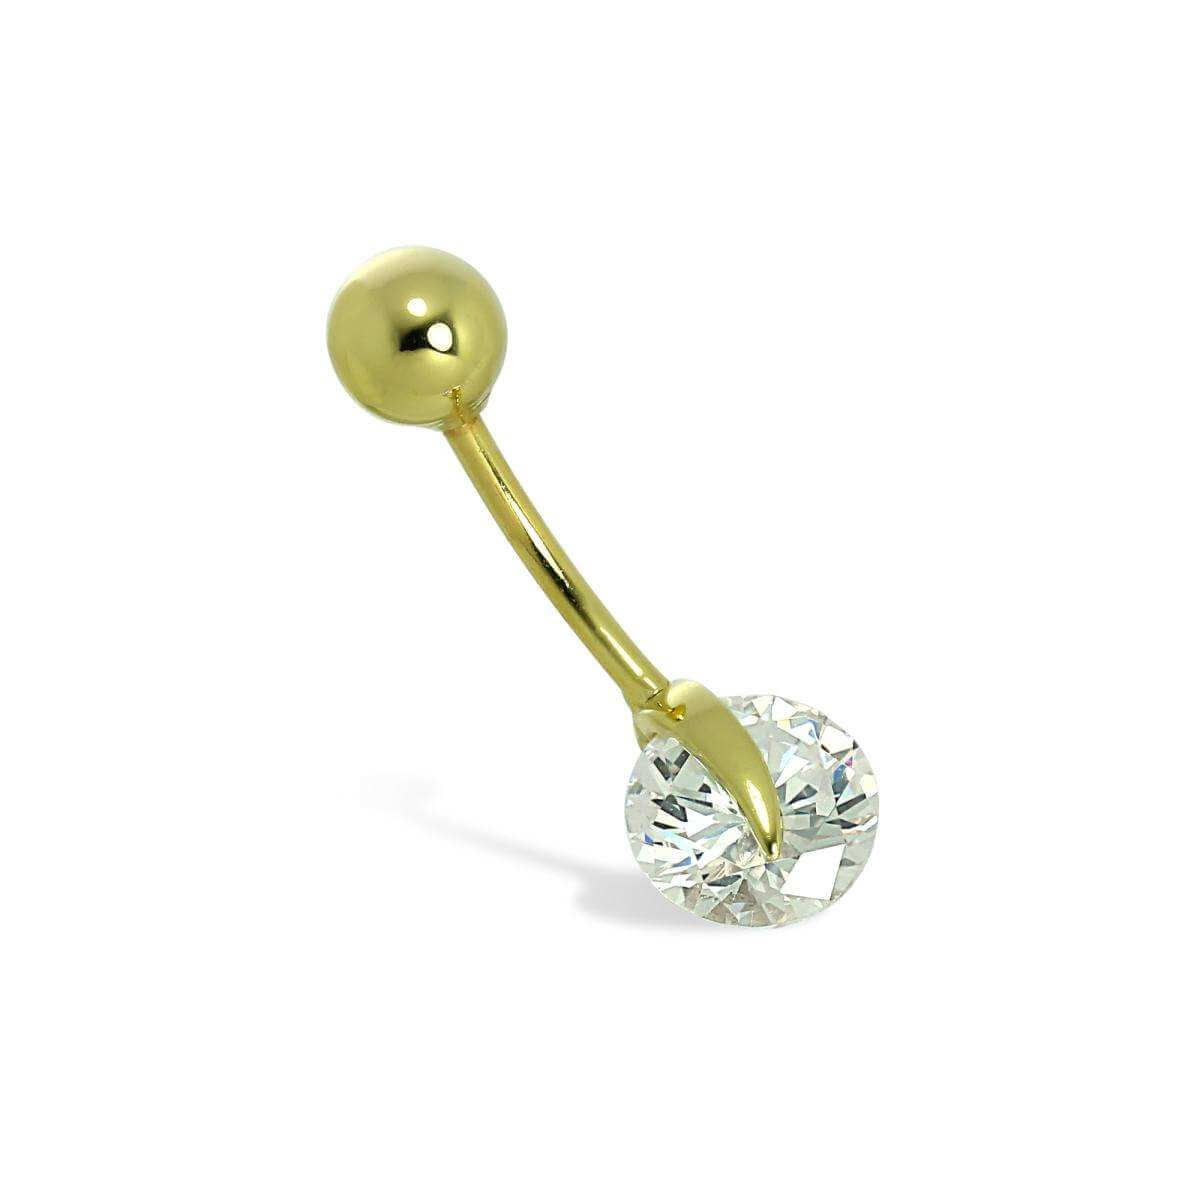 9ct Gold 7mm Clear CZ Crystal Wheel Ball End Belly Bar Piercing